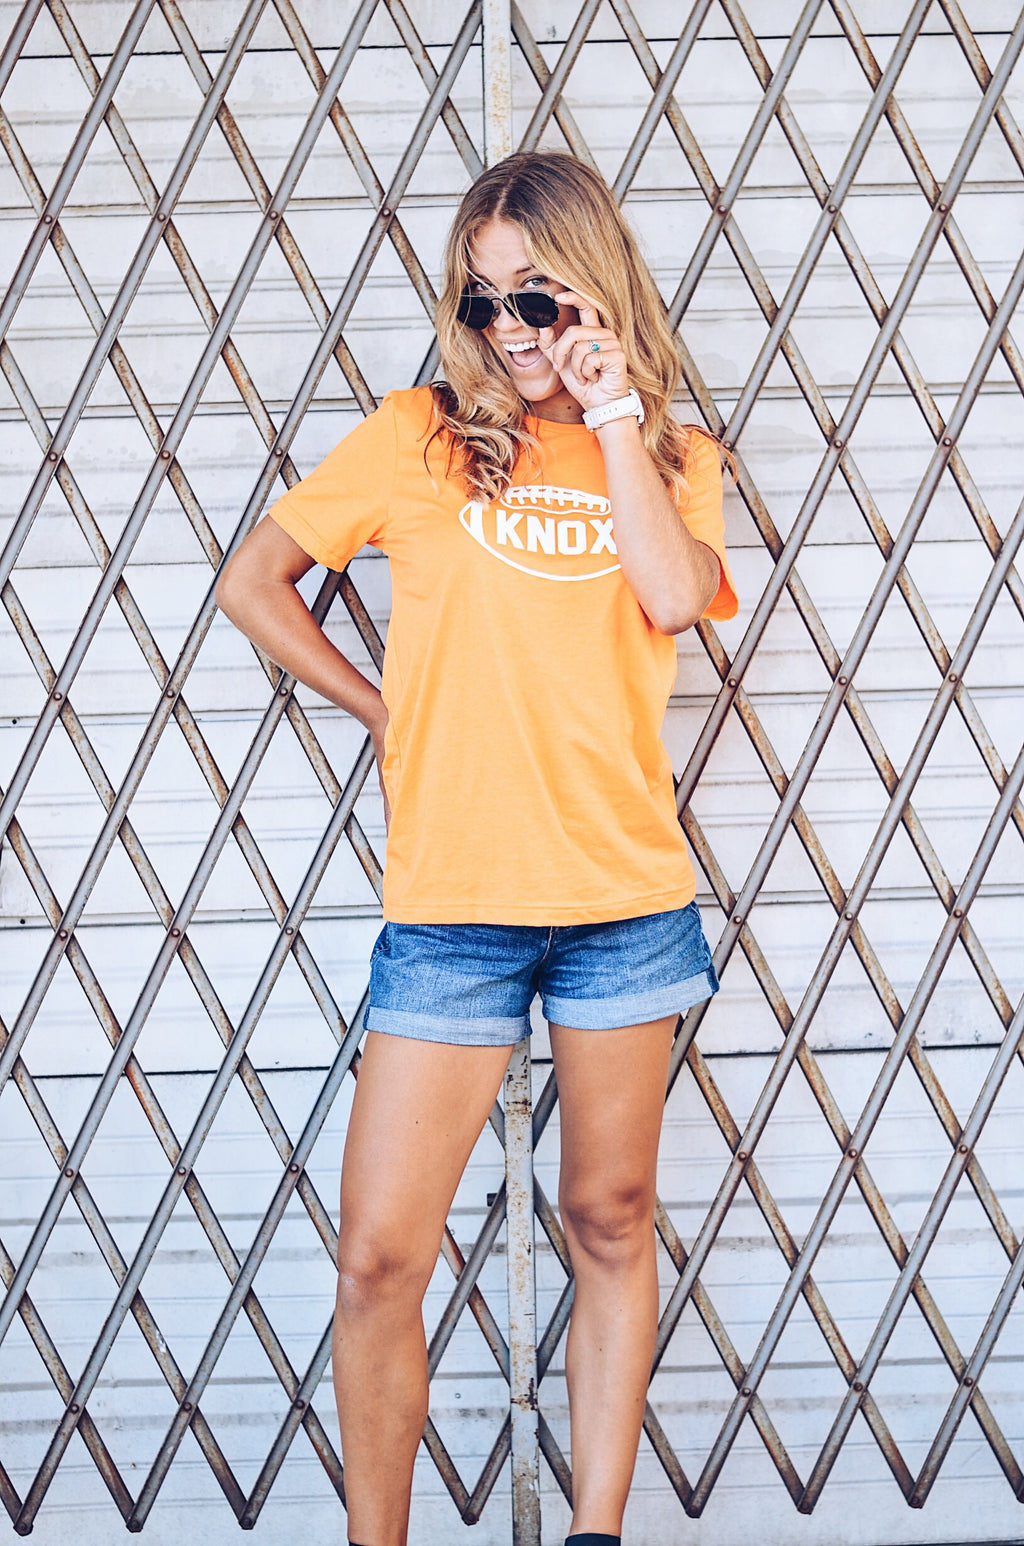 Football T-Shirt in Neon Orange, KNOX